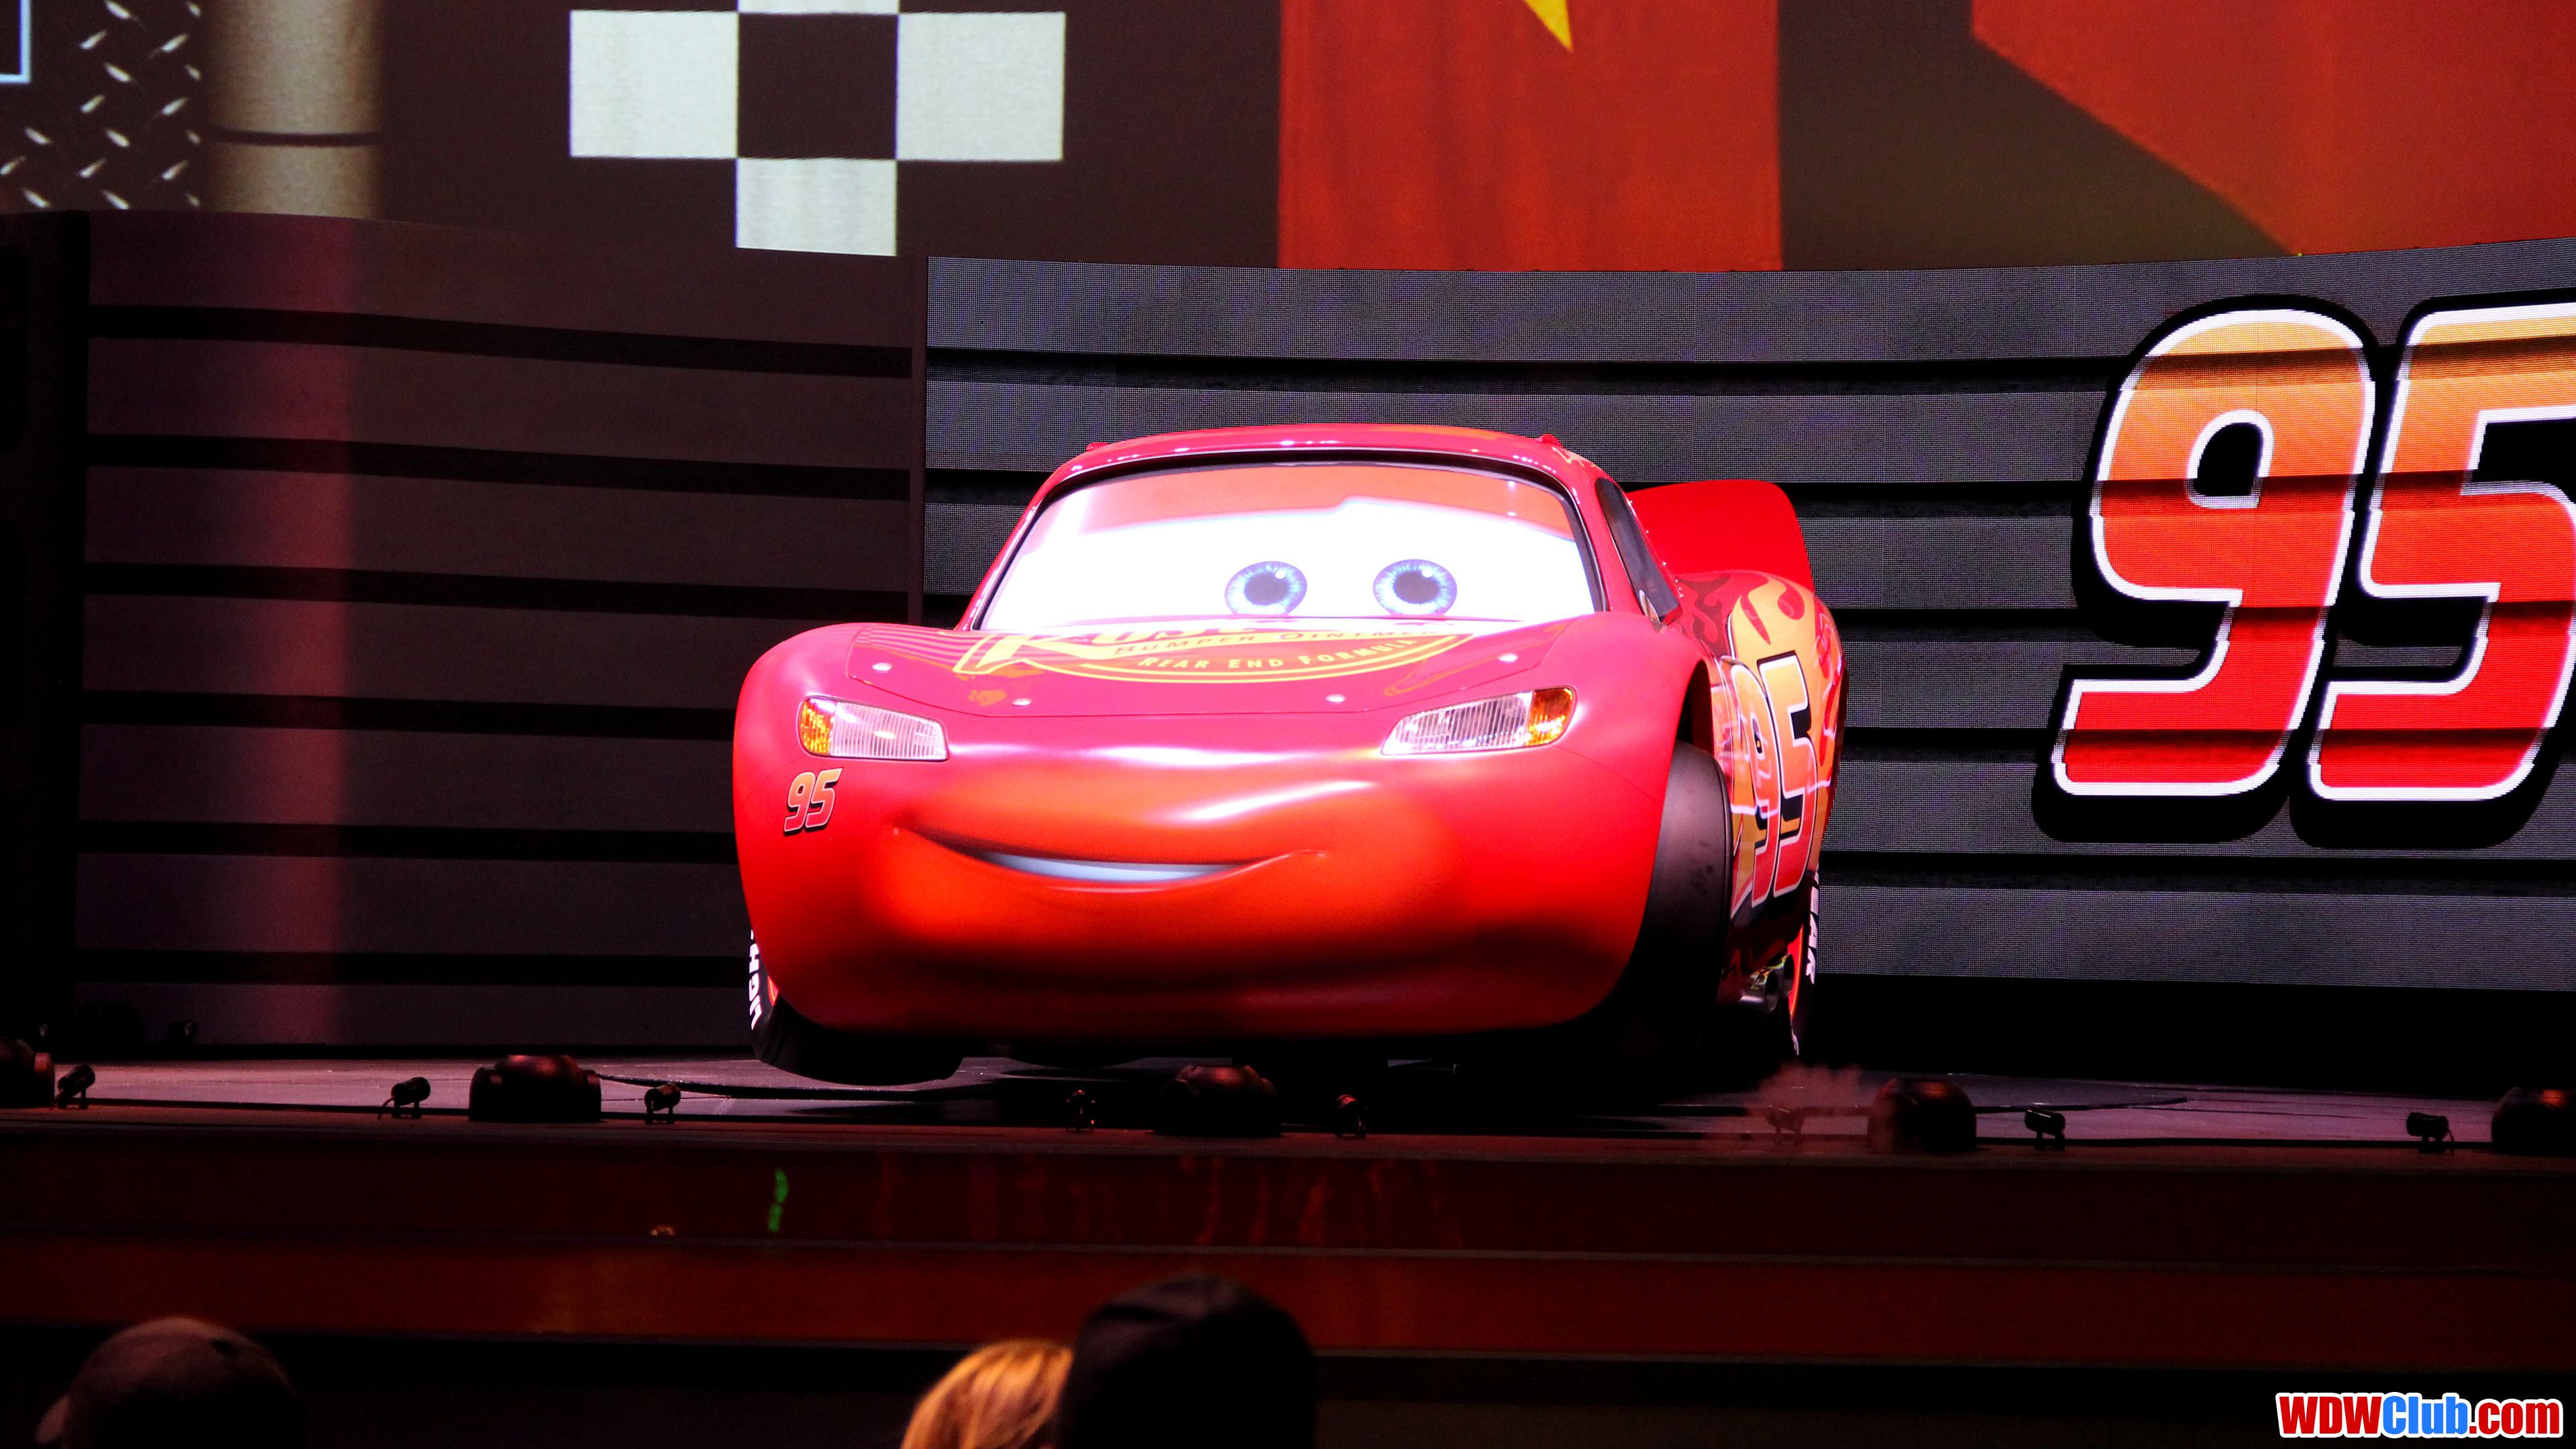 Lightning Mcqueen Wallpaper Posted By Zoey Johnson